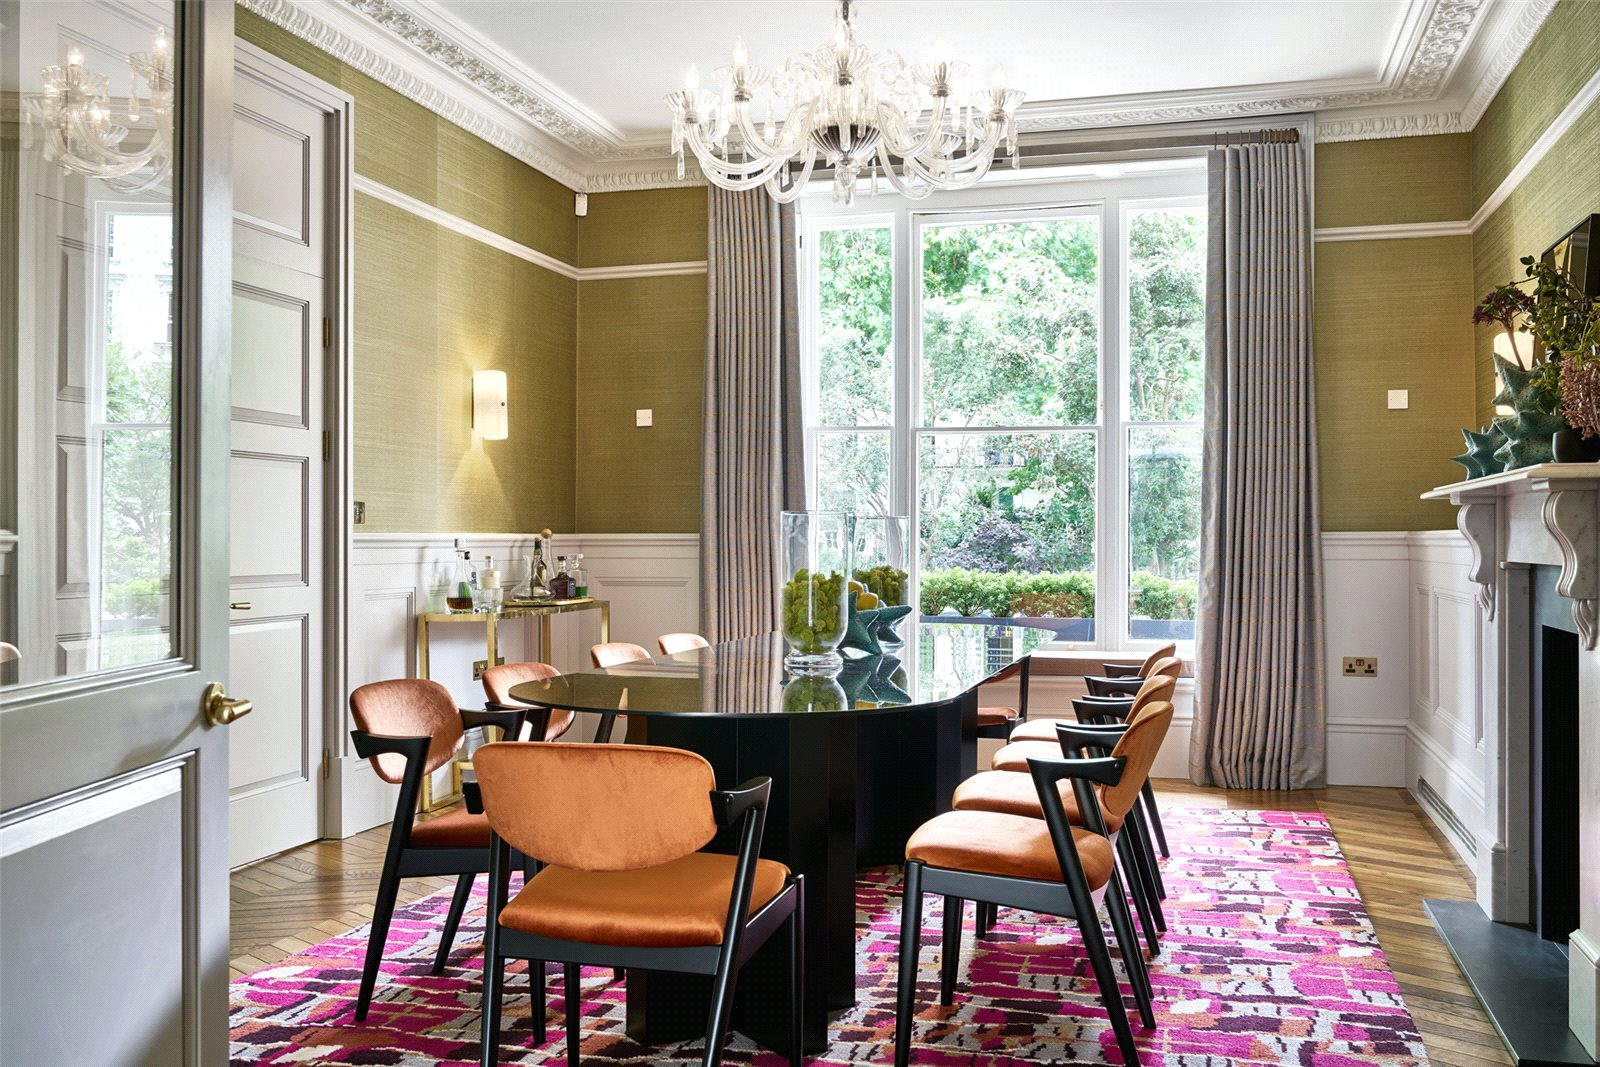 Leinster Square,Dining room